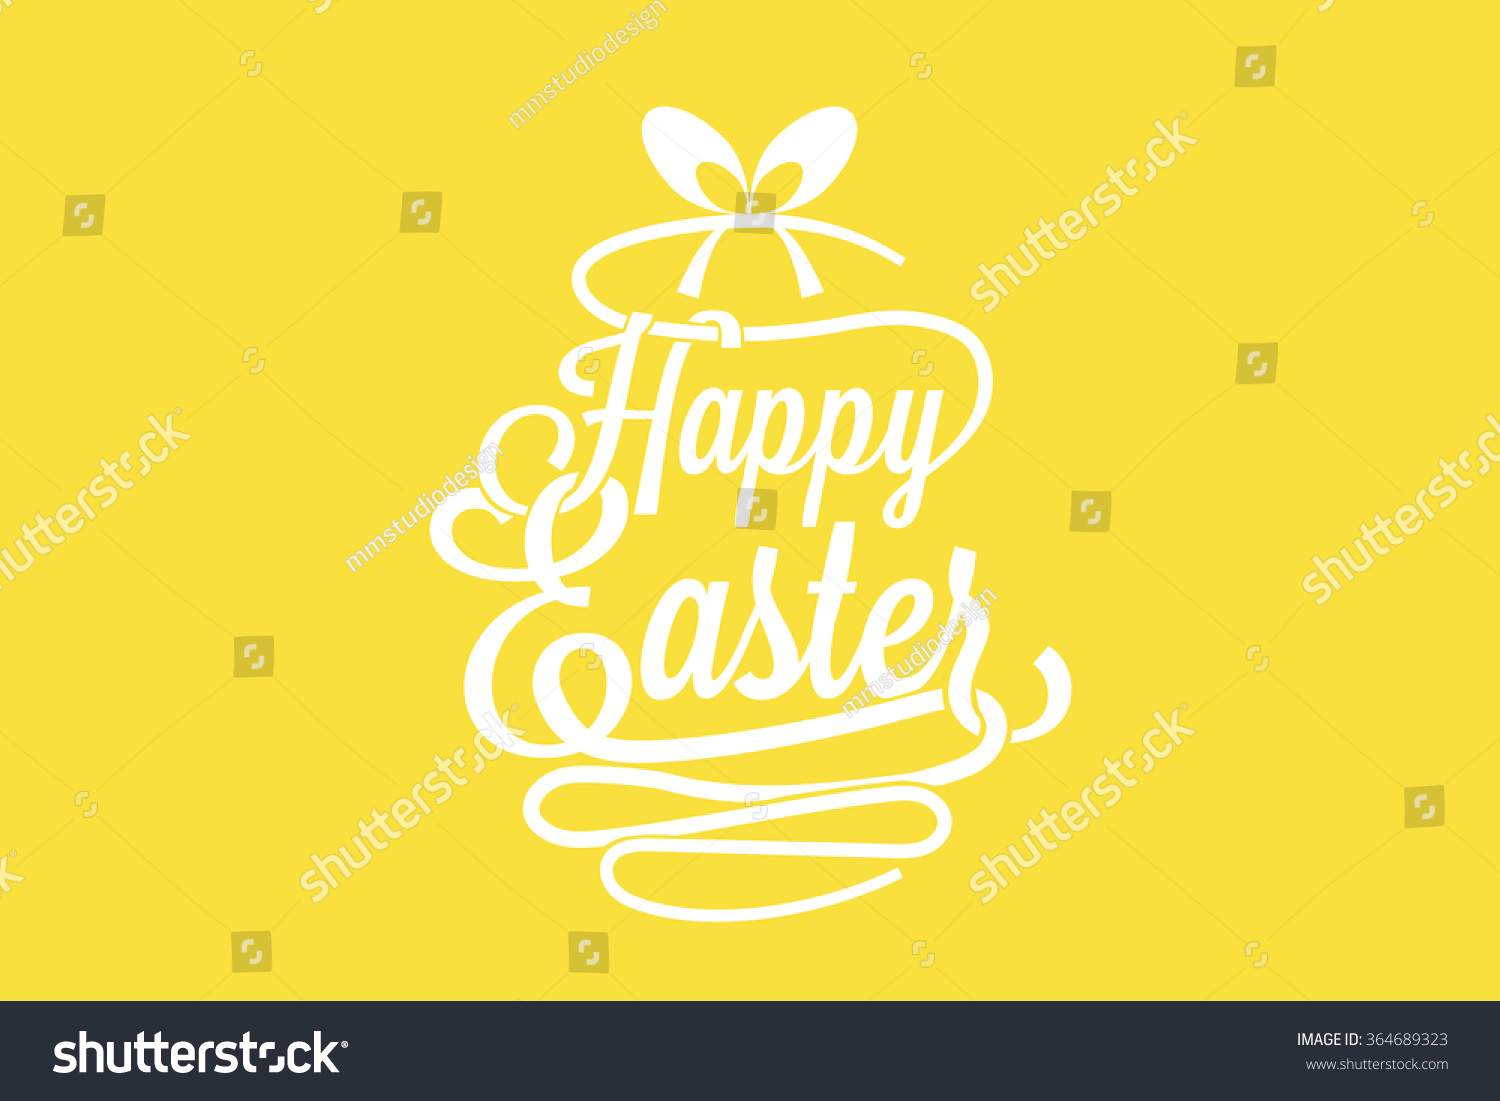 Happy Easter Greeting Card Calligraphic Words Stock Vector Hd